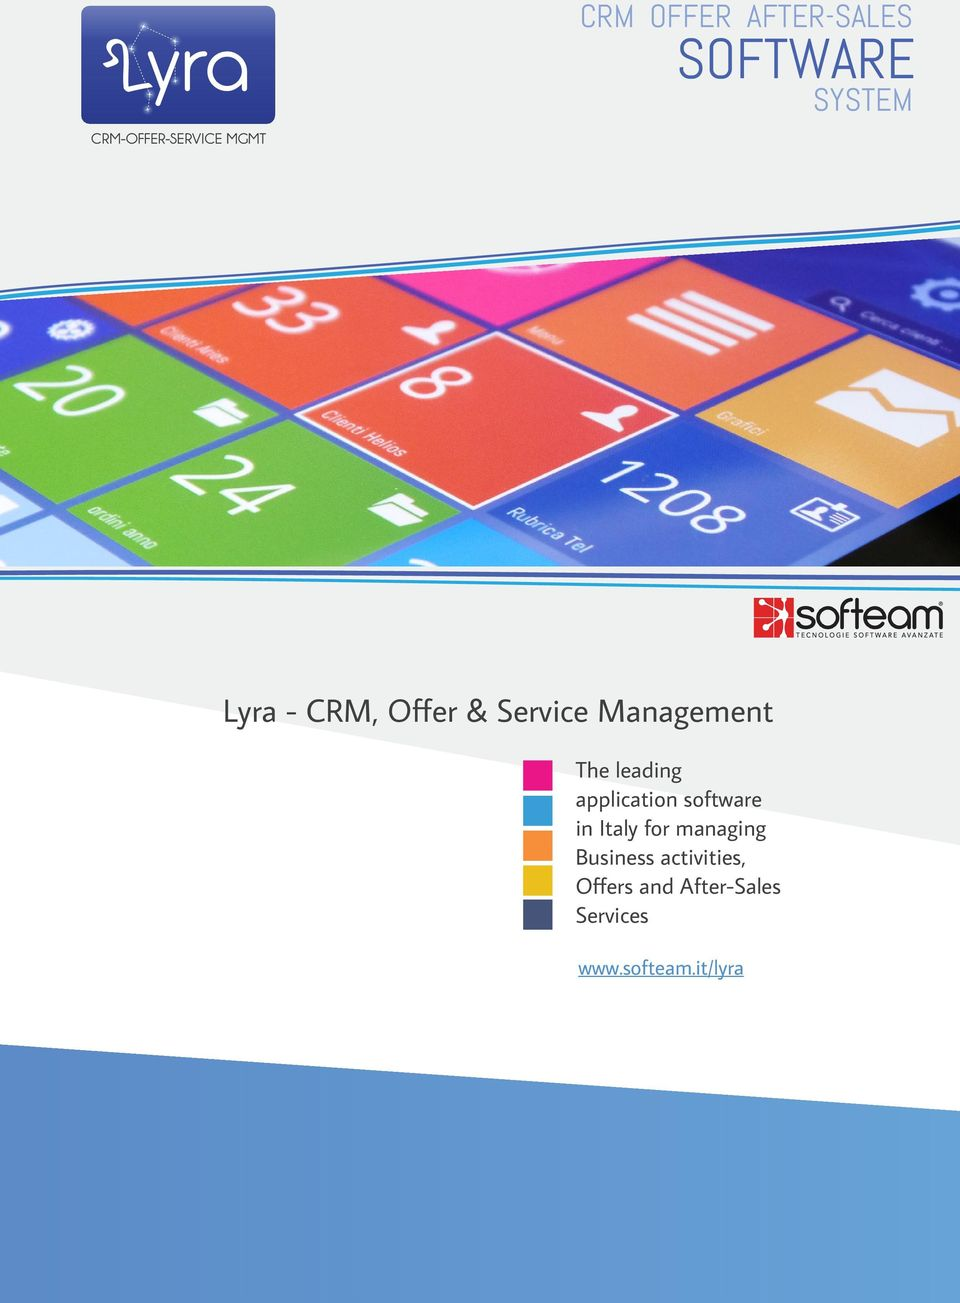 leading application software in Italy for managing